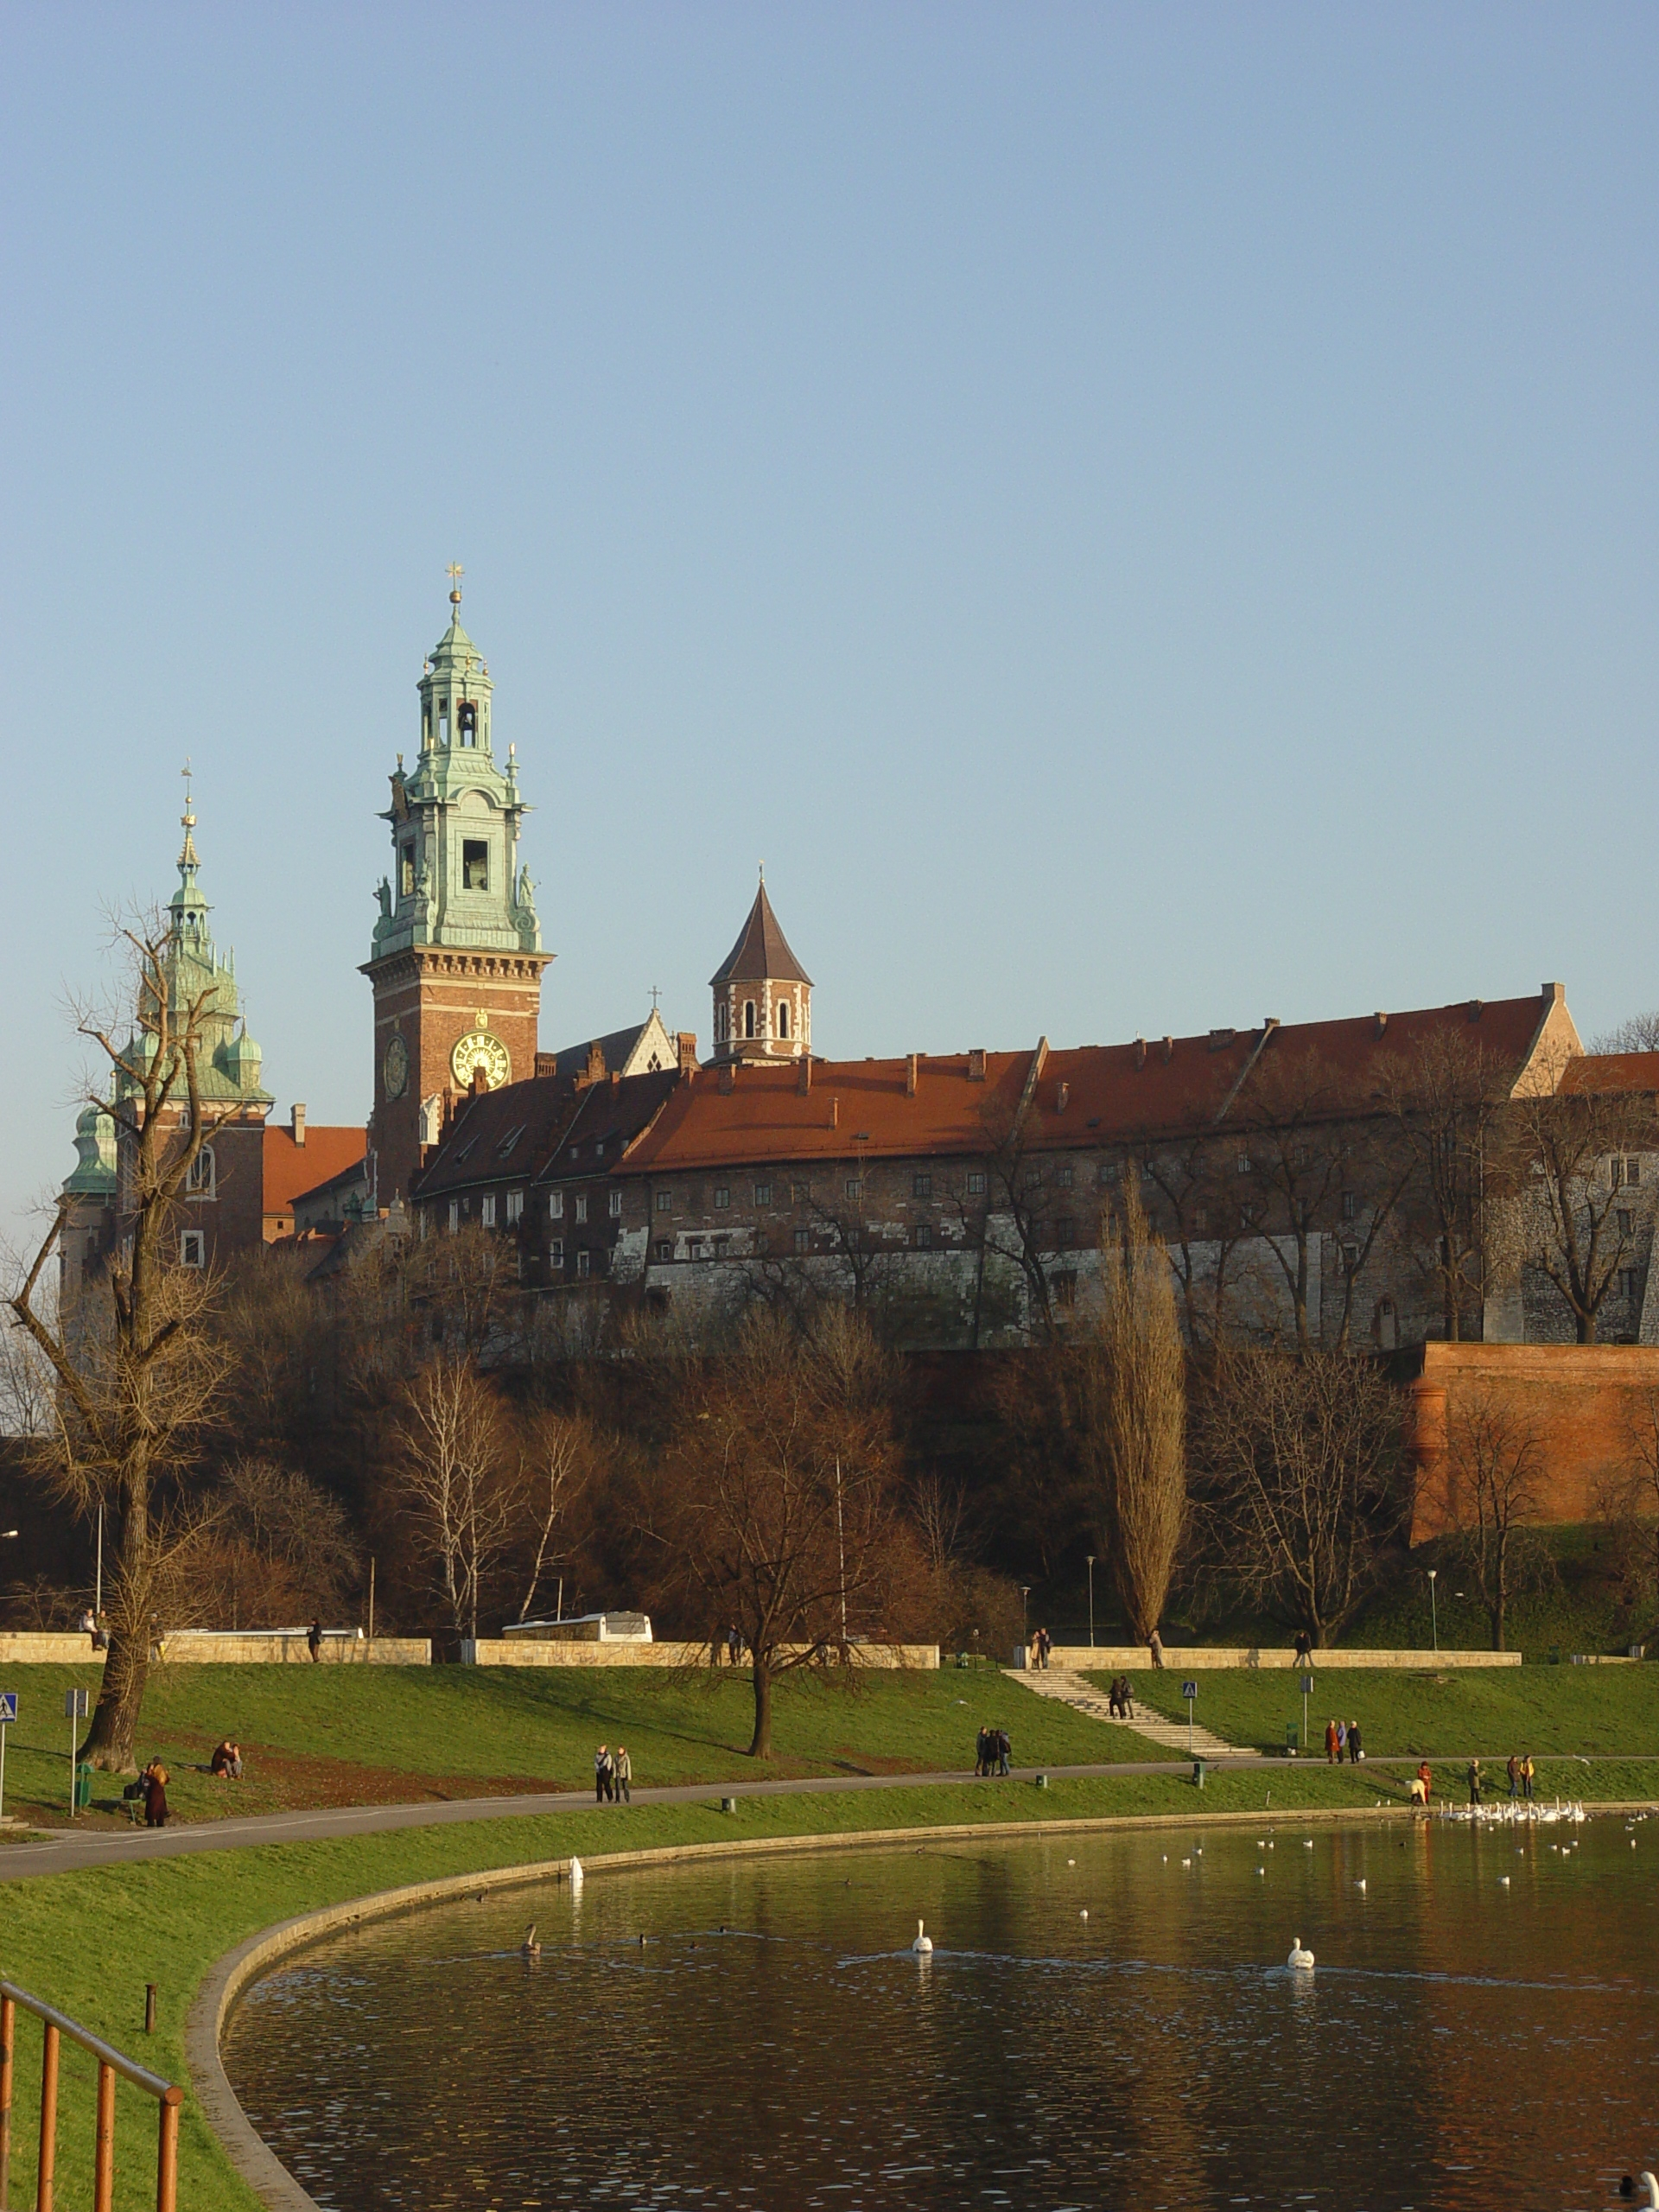 Vistula river near the Wawel castle